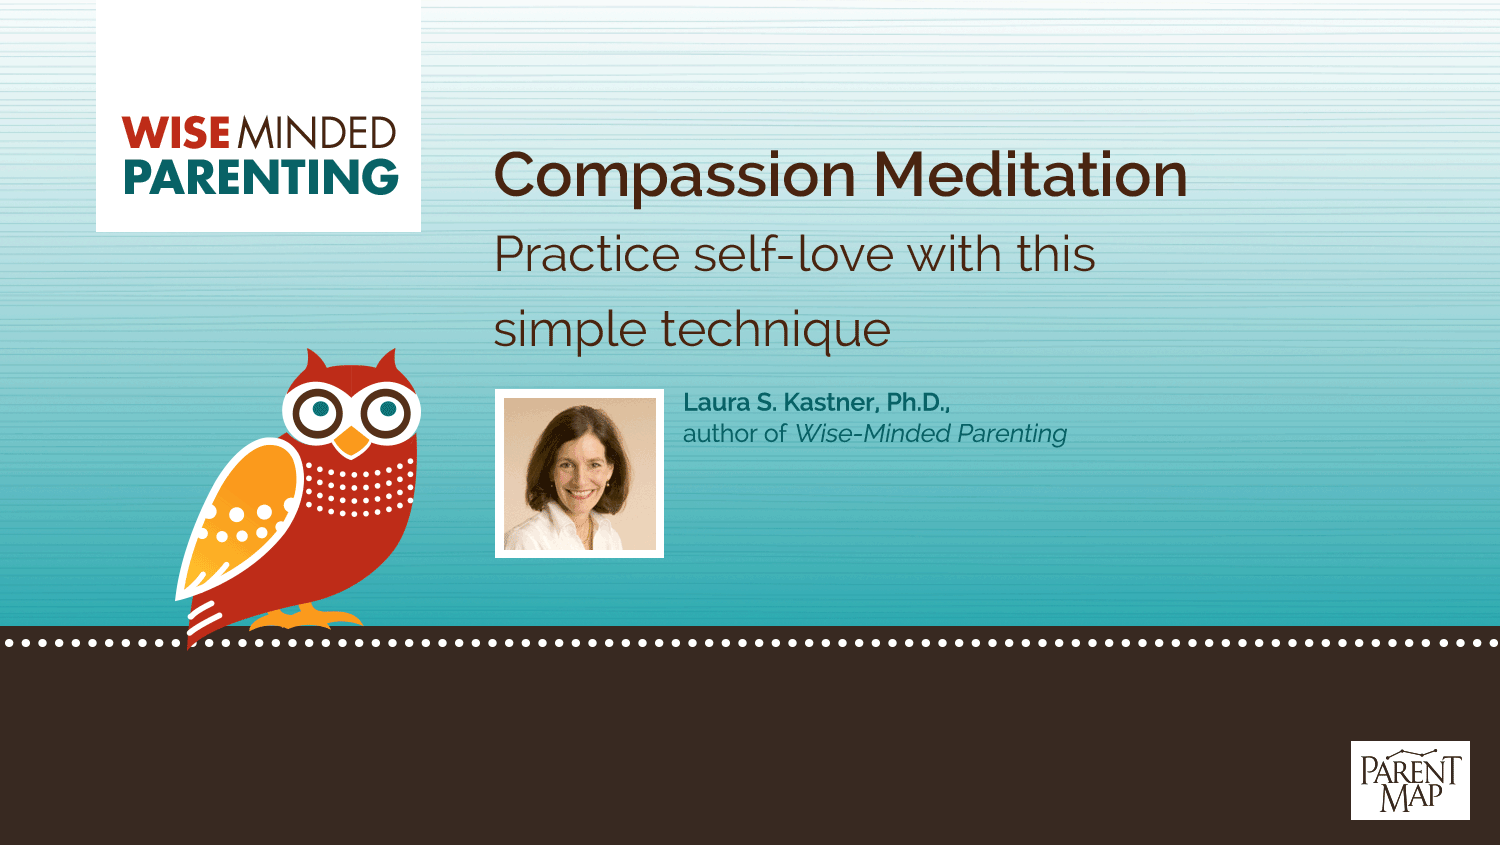 Compassion Meditation: Practice self-love with this simple technique